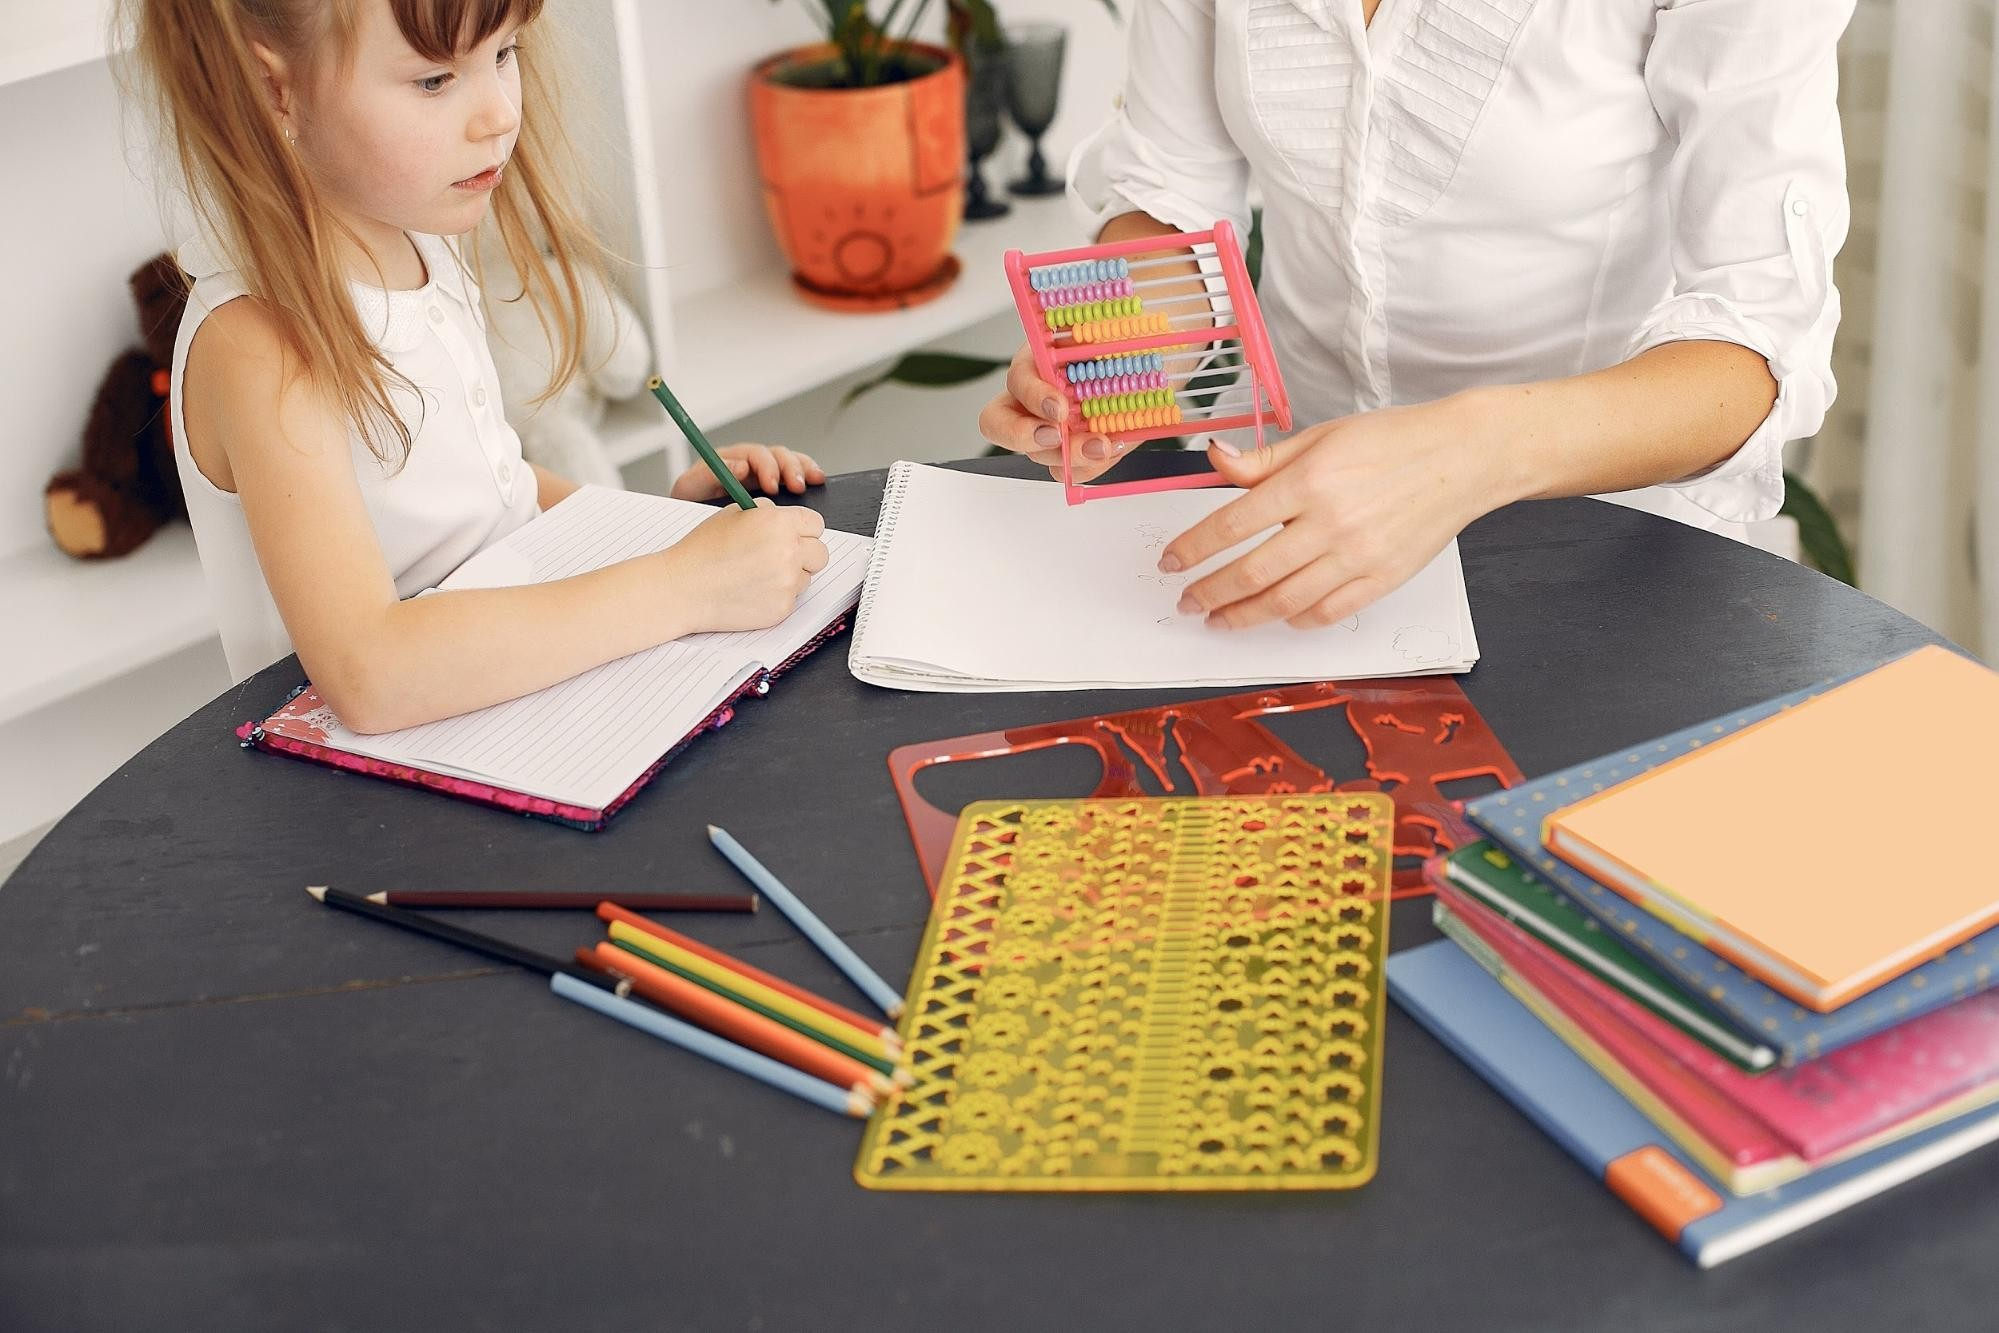 Young girls sits at a table with teachers, writing in a notebook and looking at writing supplies on the table.